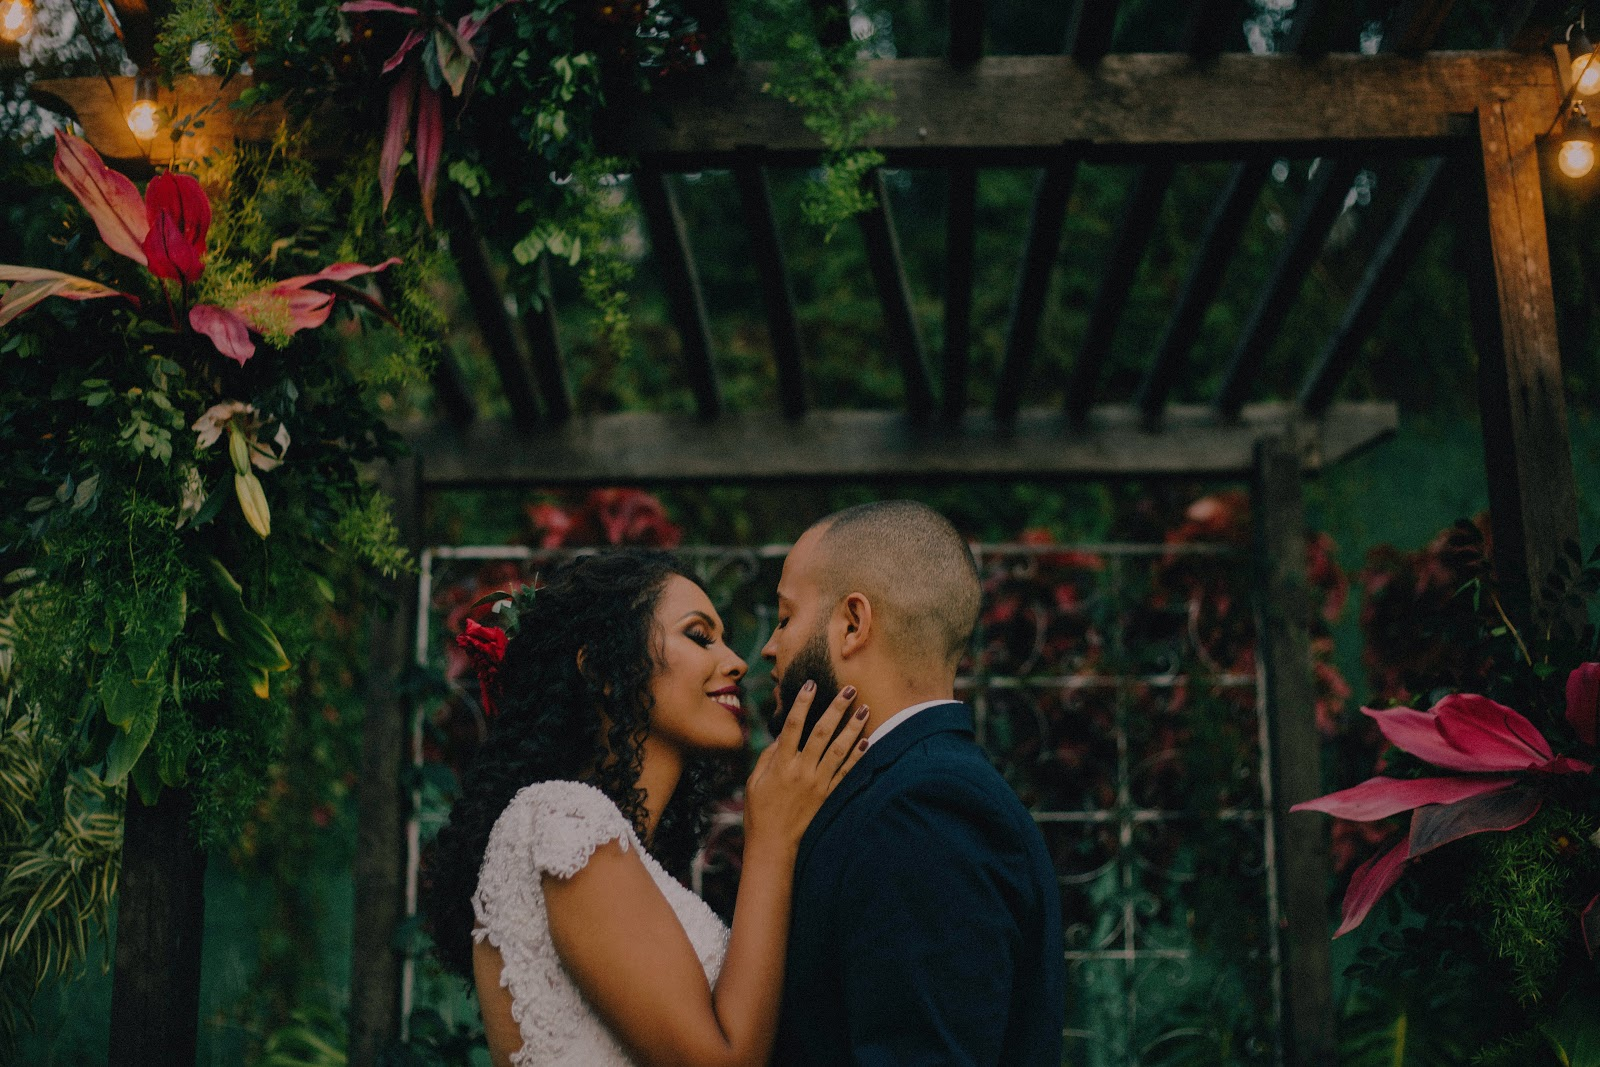 couple holding each other surrounded by greenery